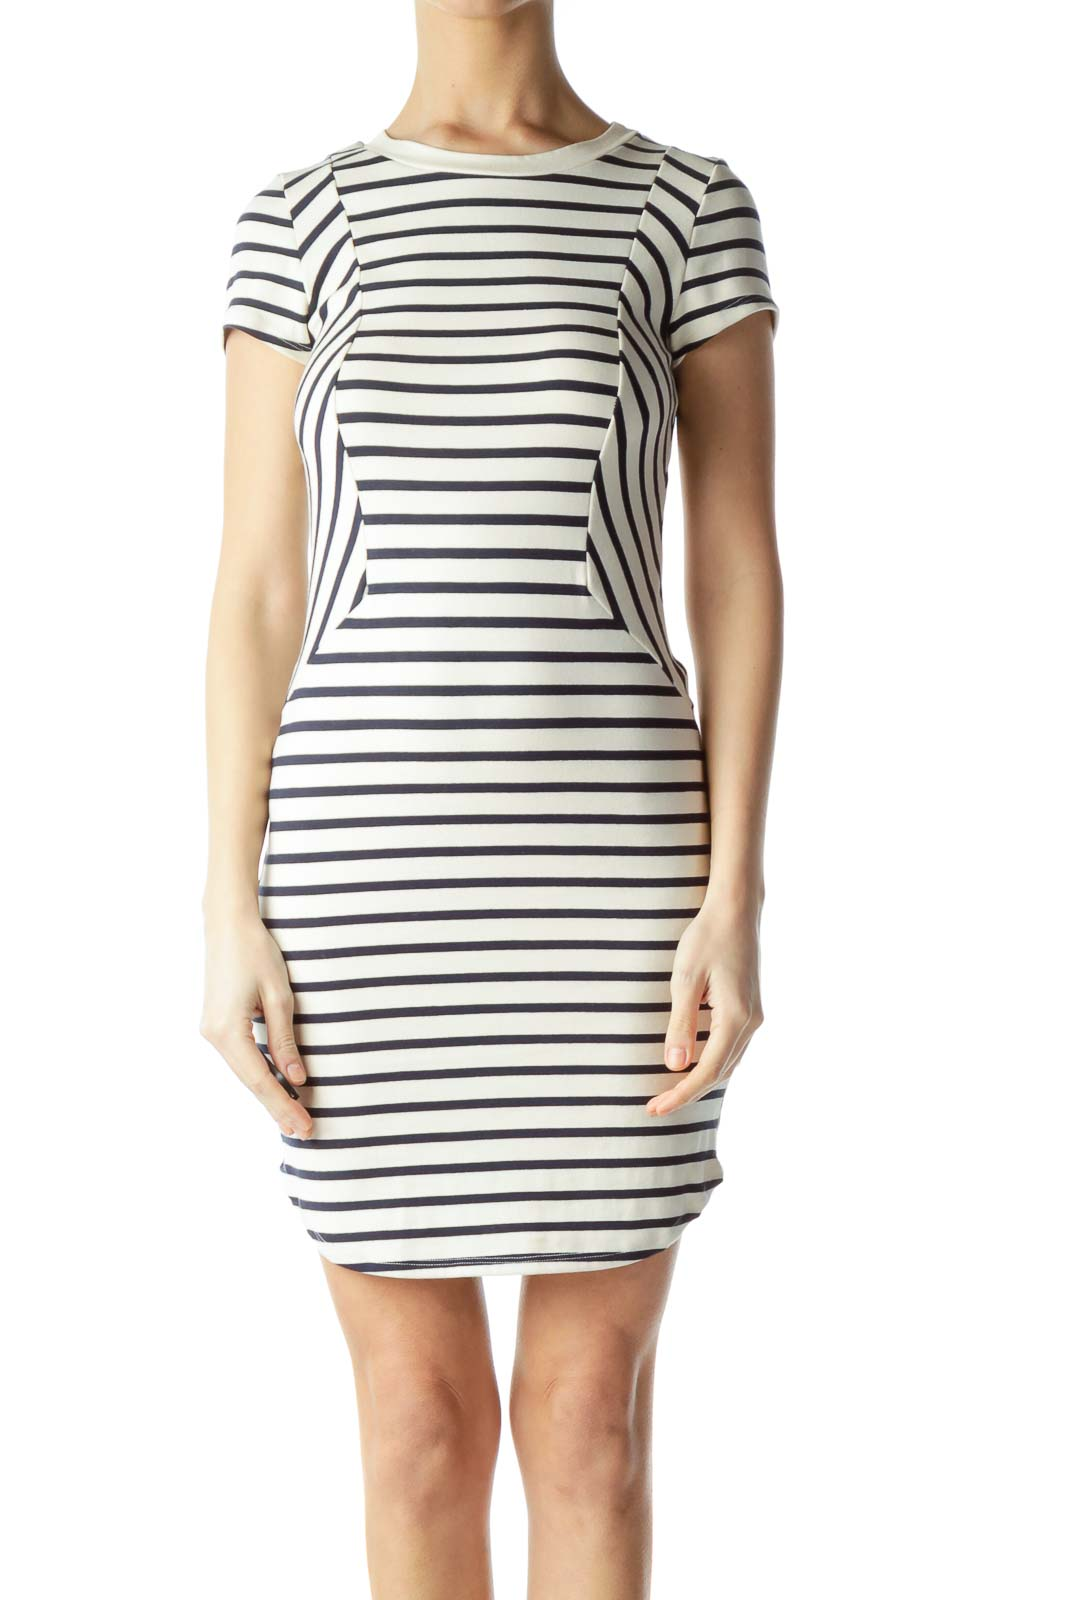 Cream with Navy Blue Stripes Jersey Dress Front